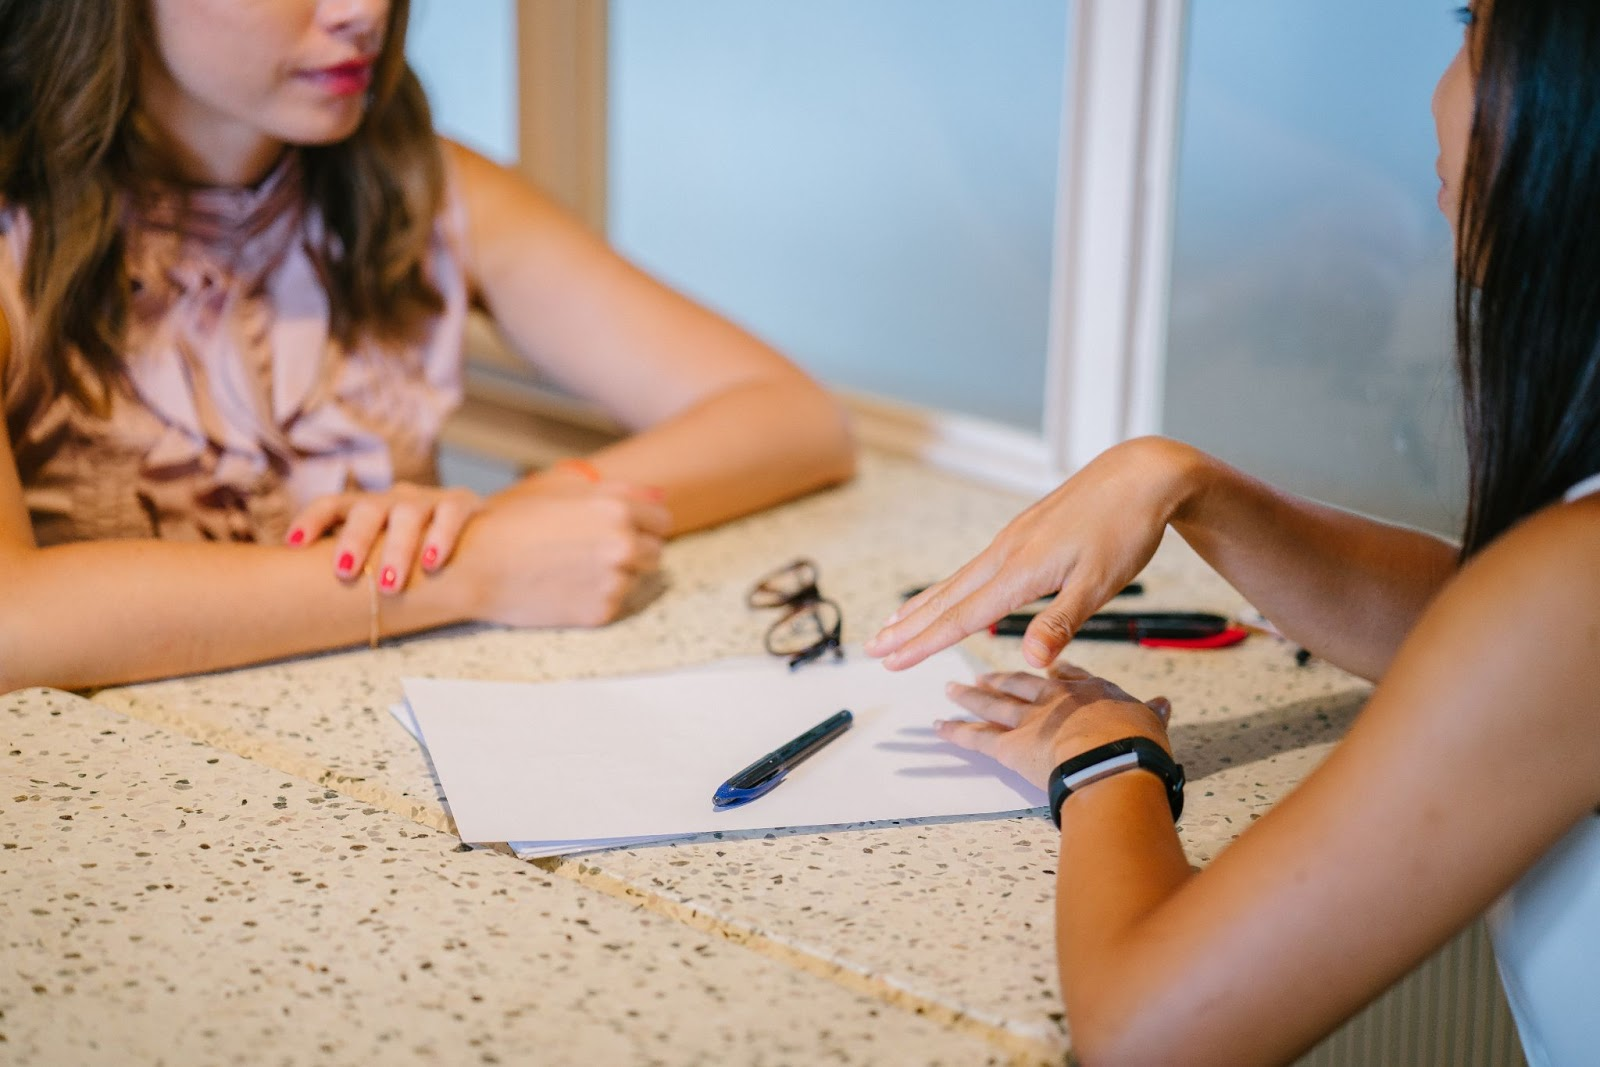 Onboarding a new employee one-on-one